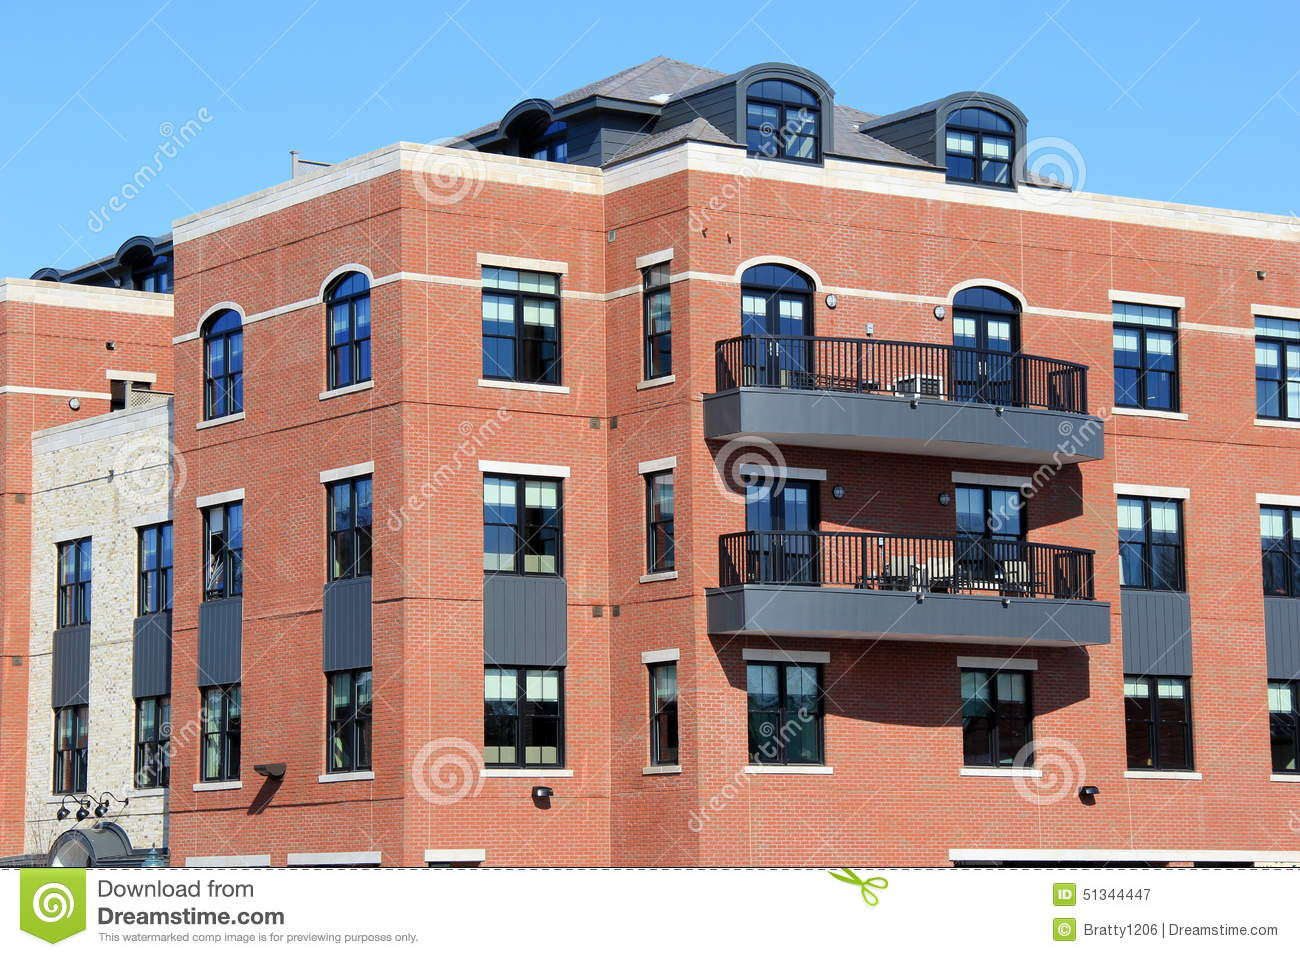 brick and stone apartment building with outdoor patios